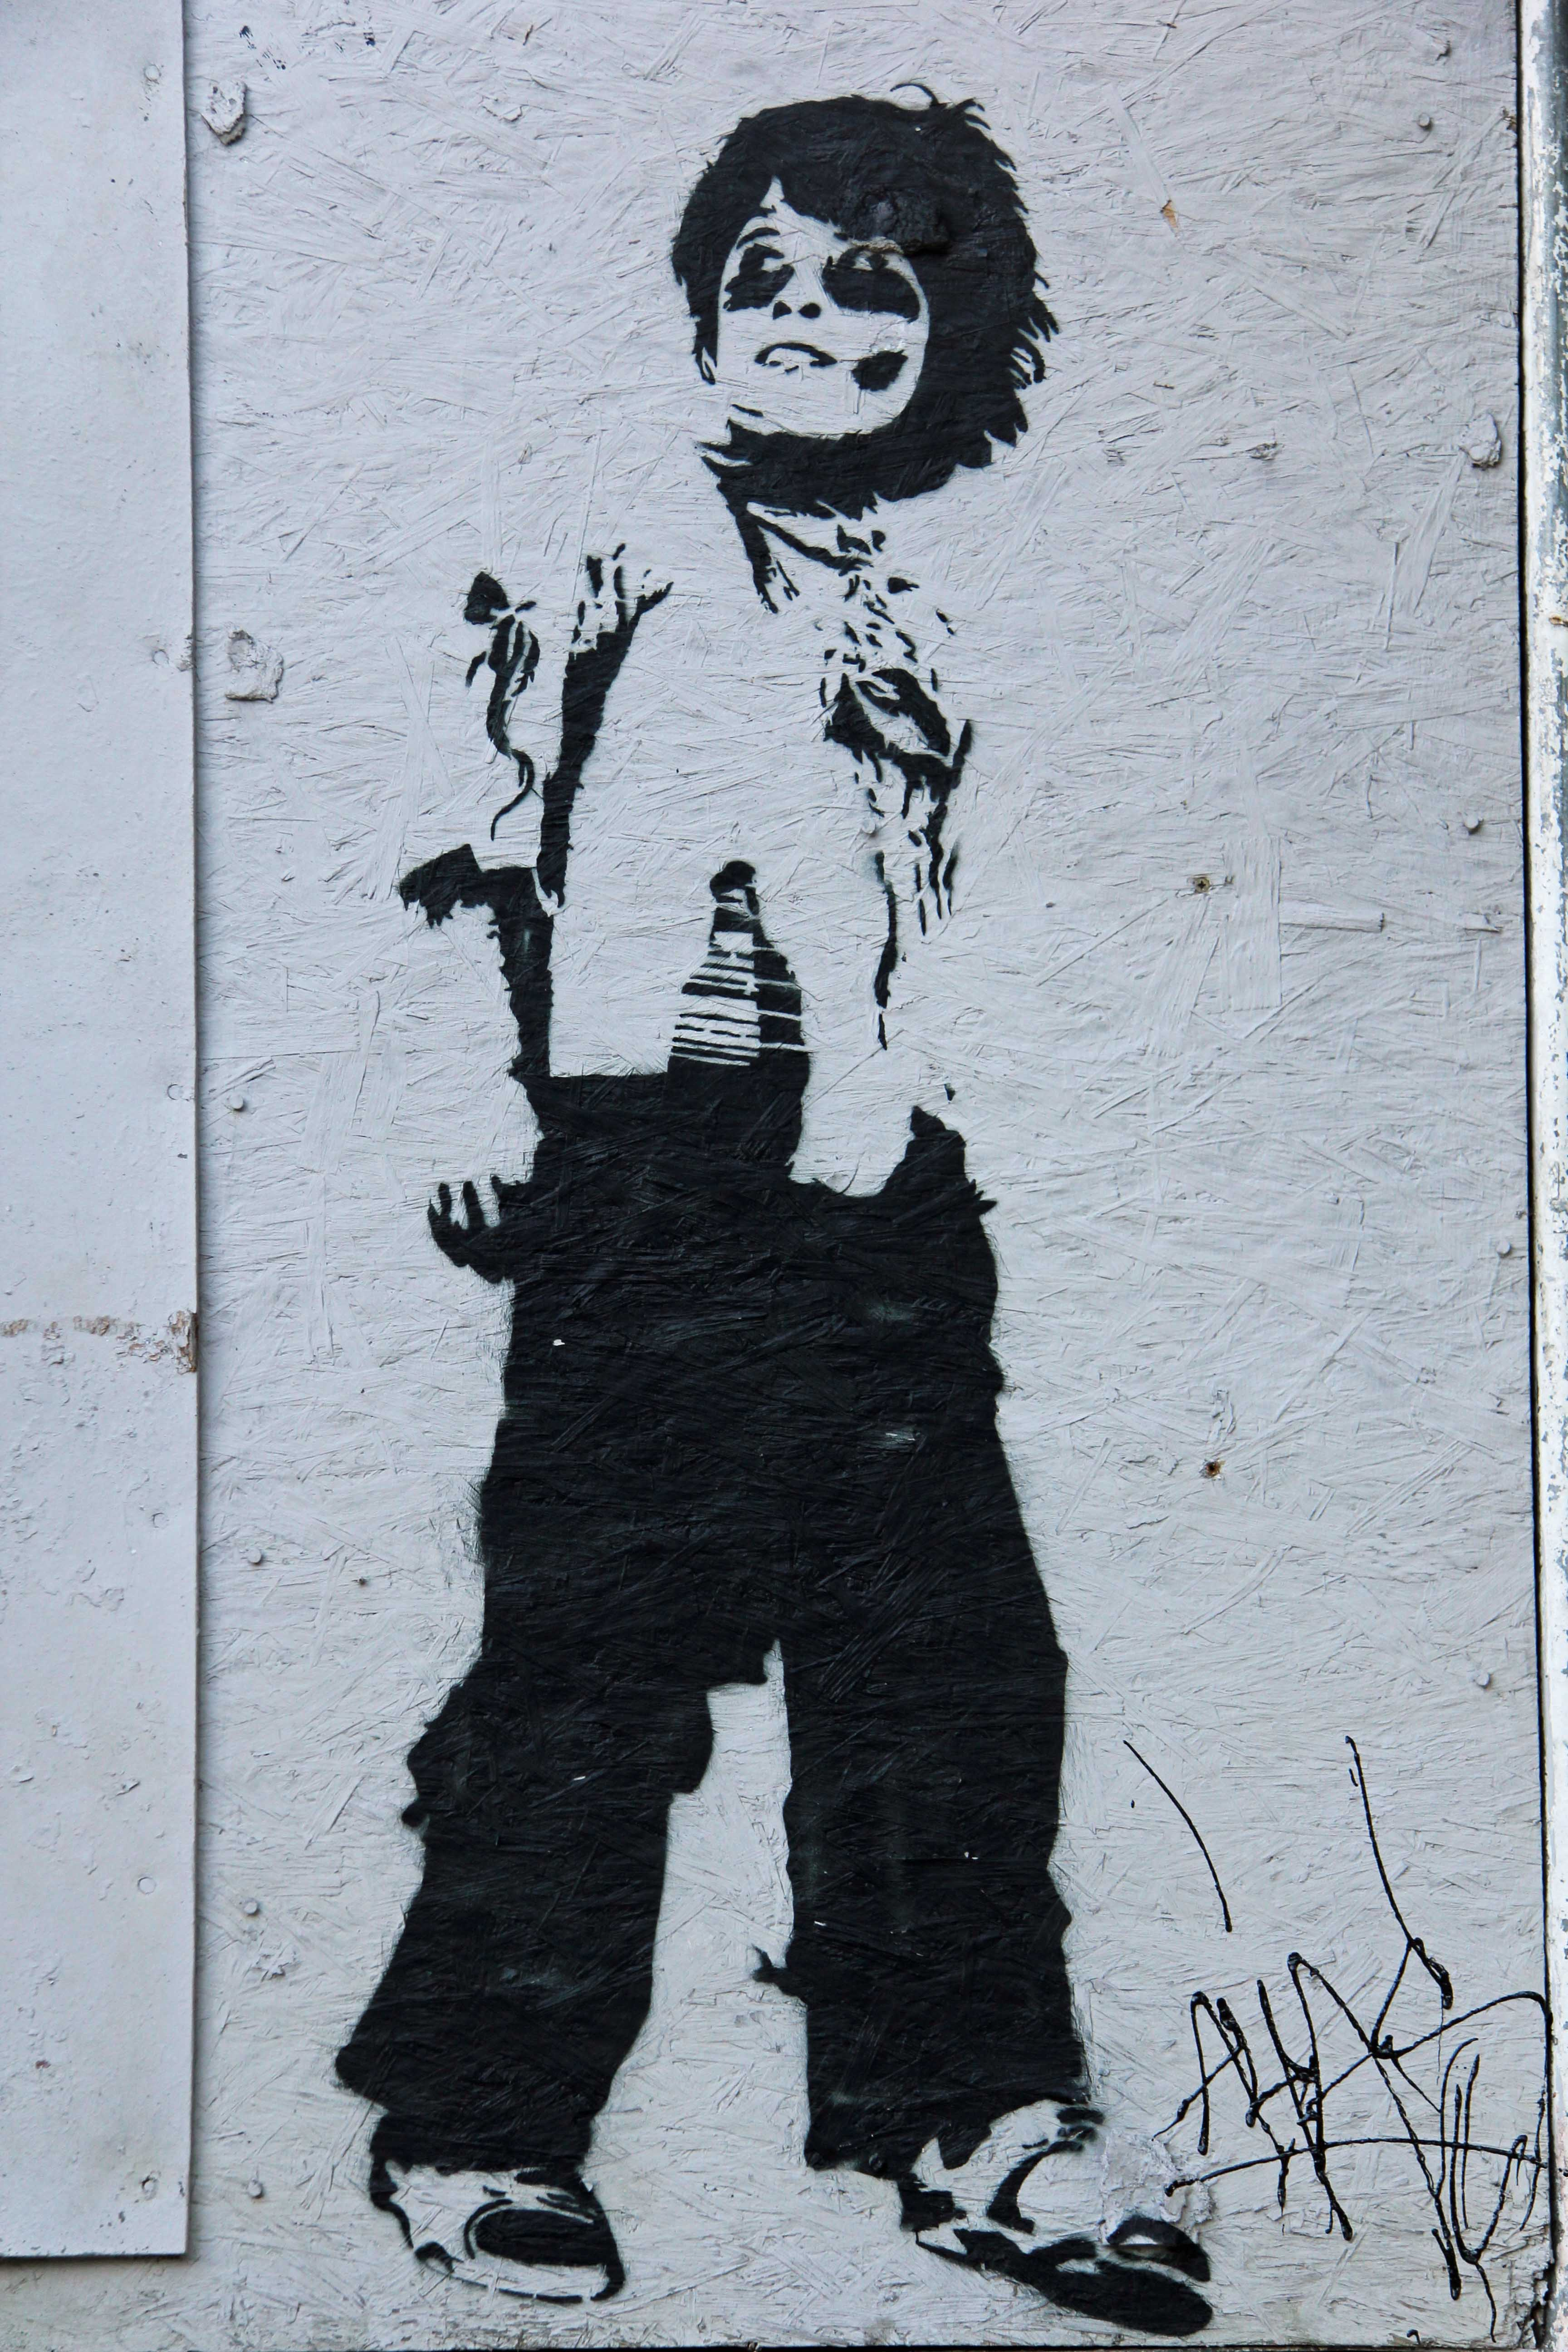 Boy With Grenade - Street Art by ALIAS in Berlin